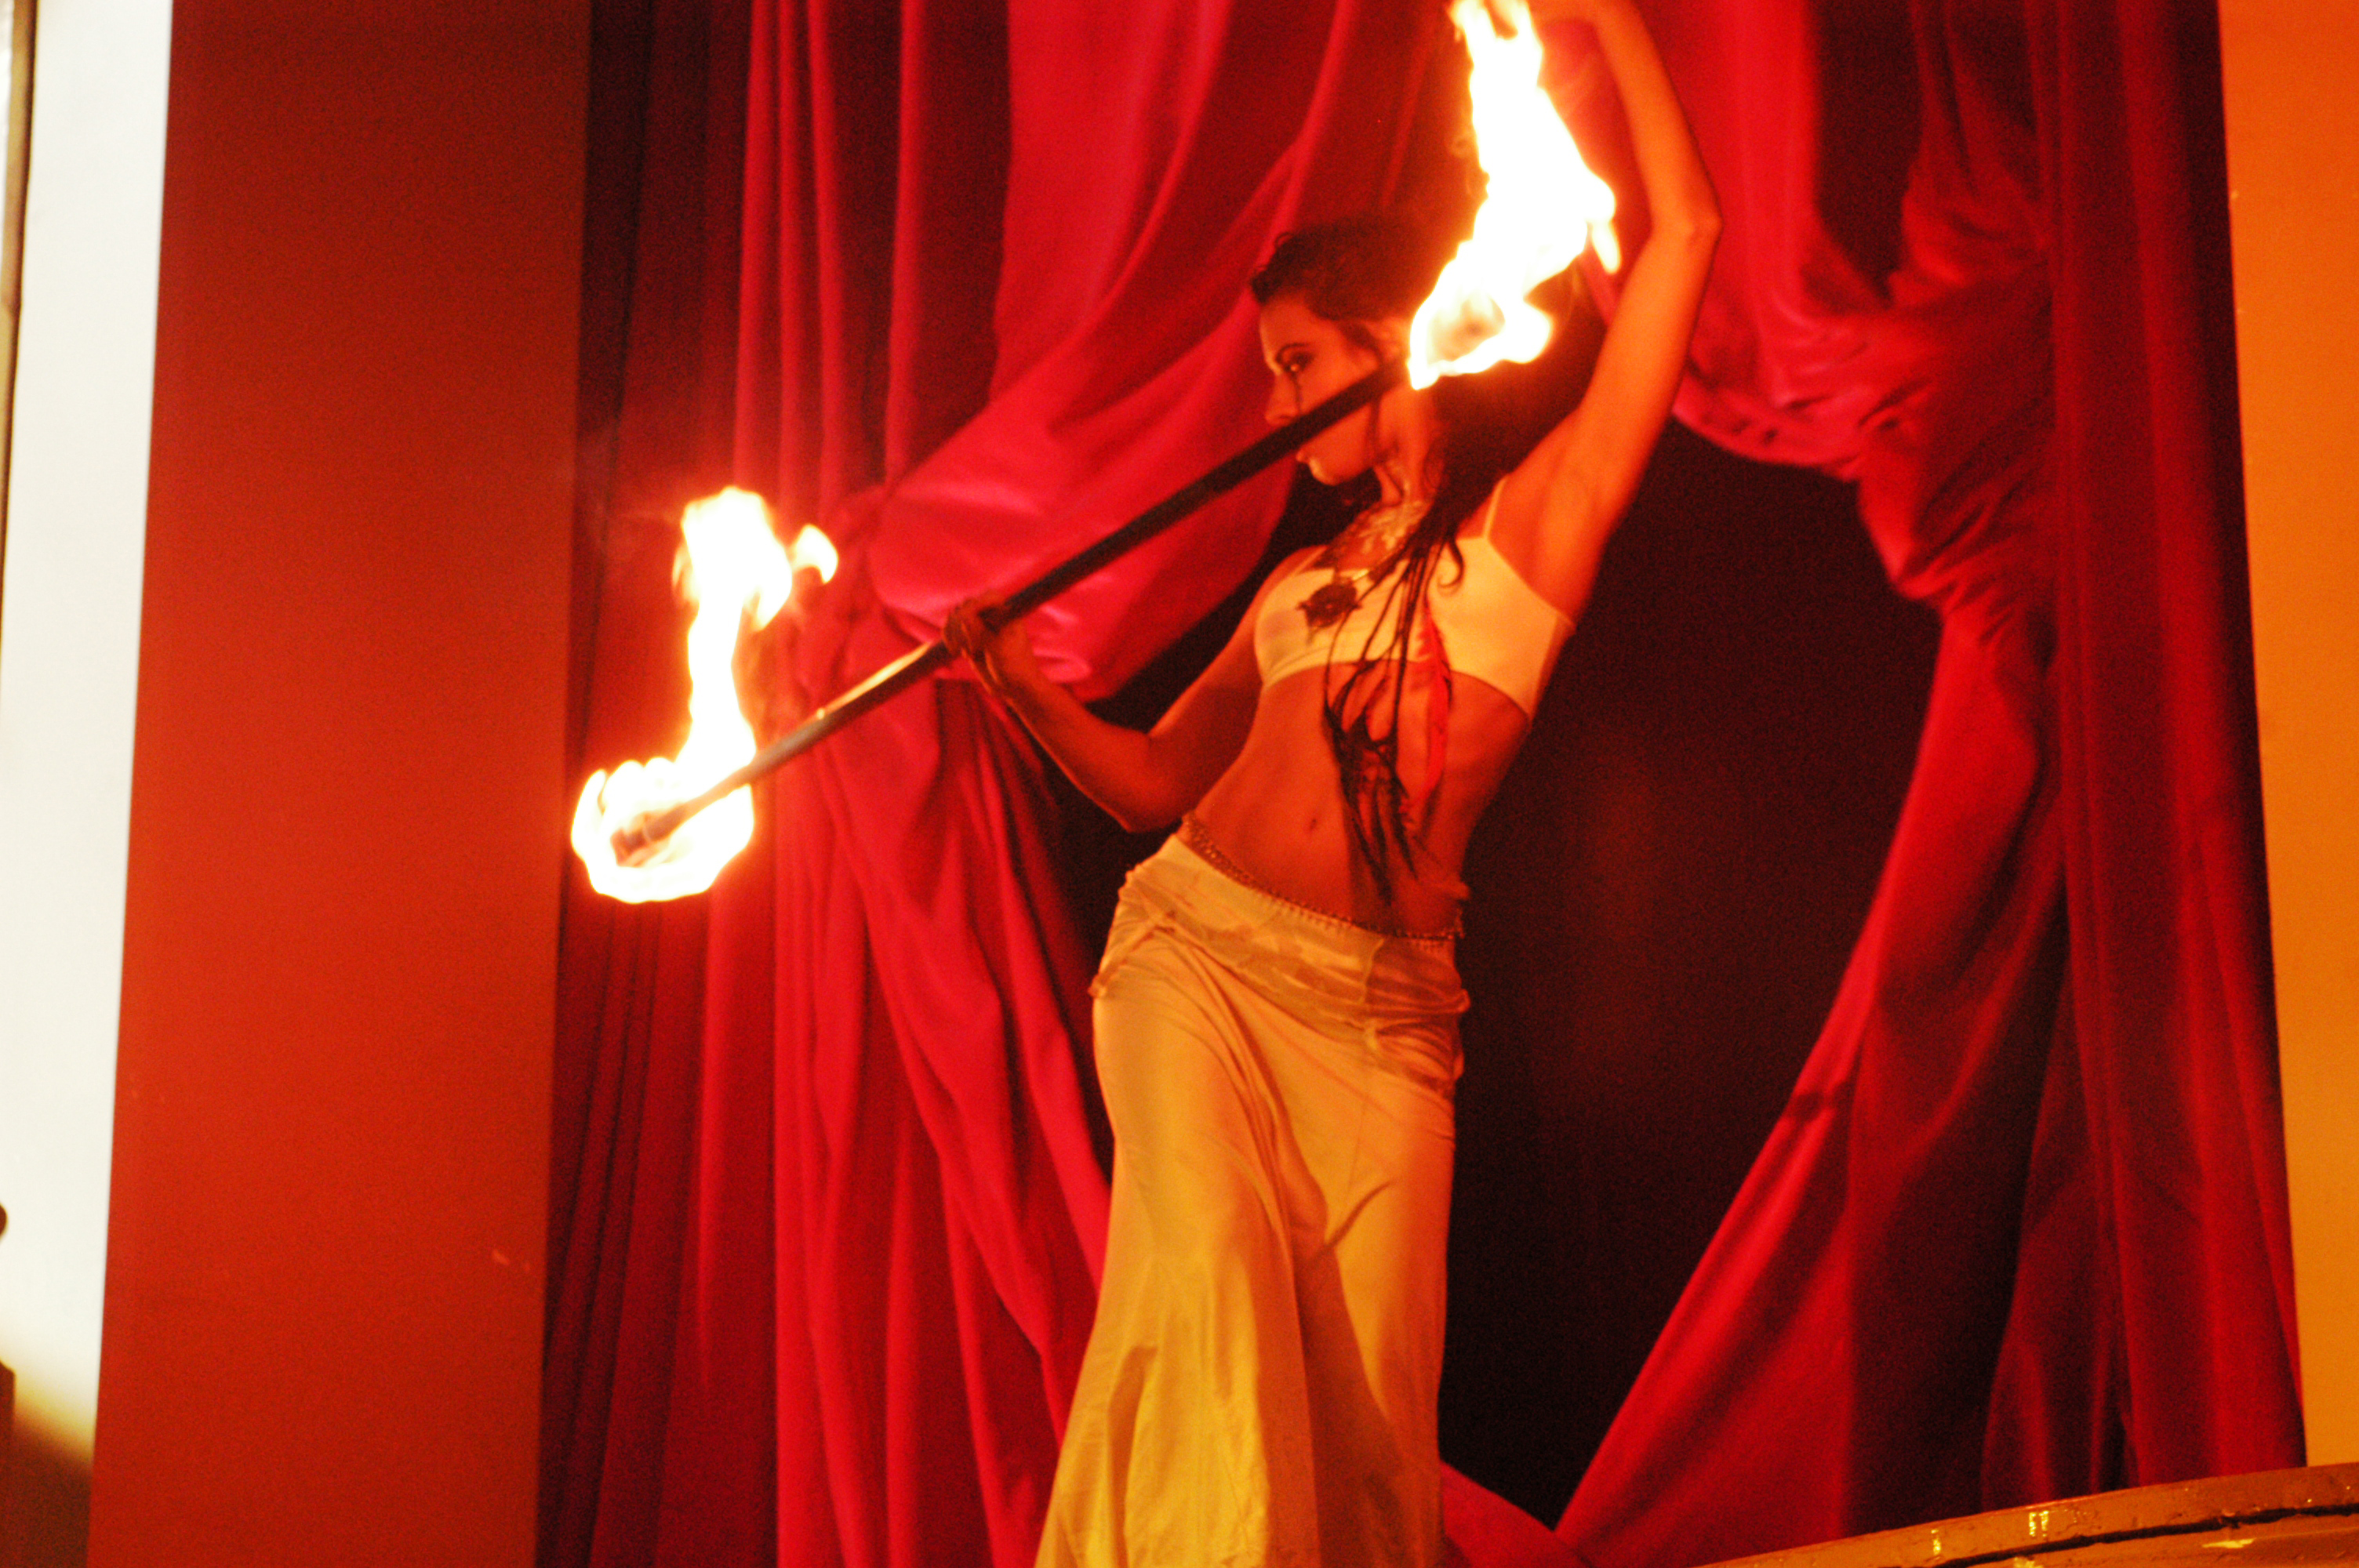 Pure - Firedancer performing on the set 2003-4